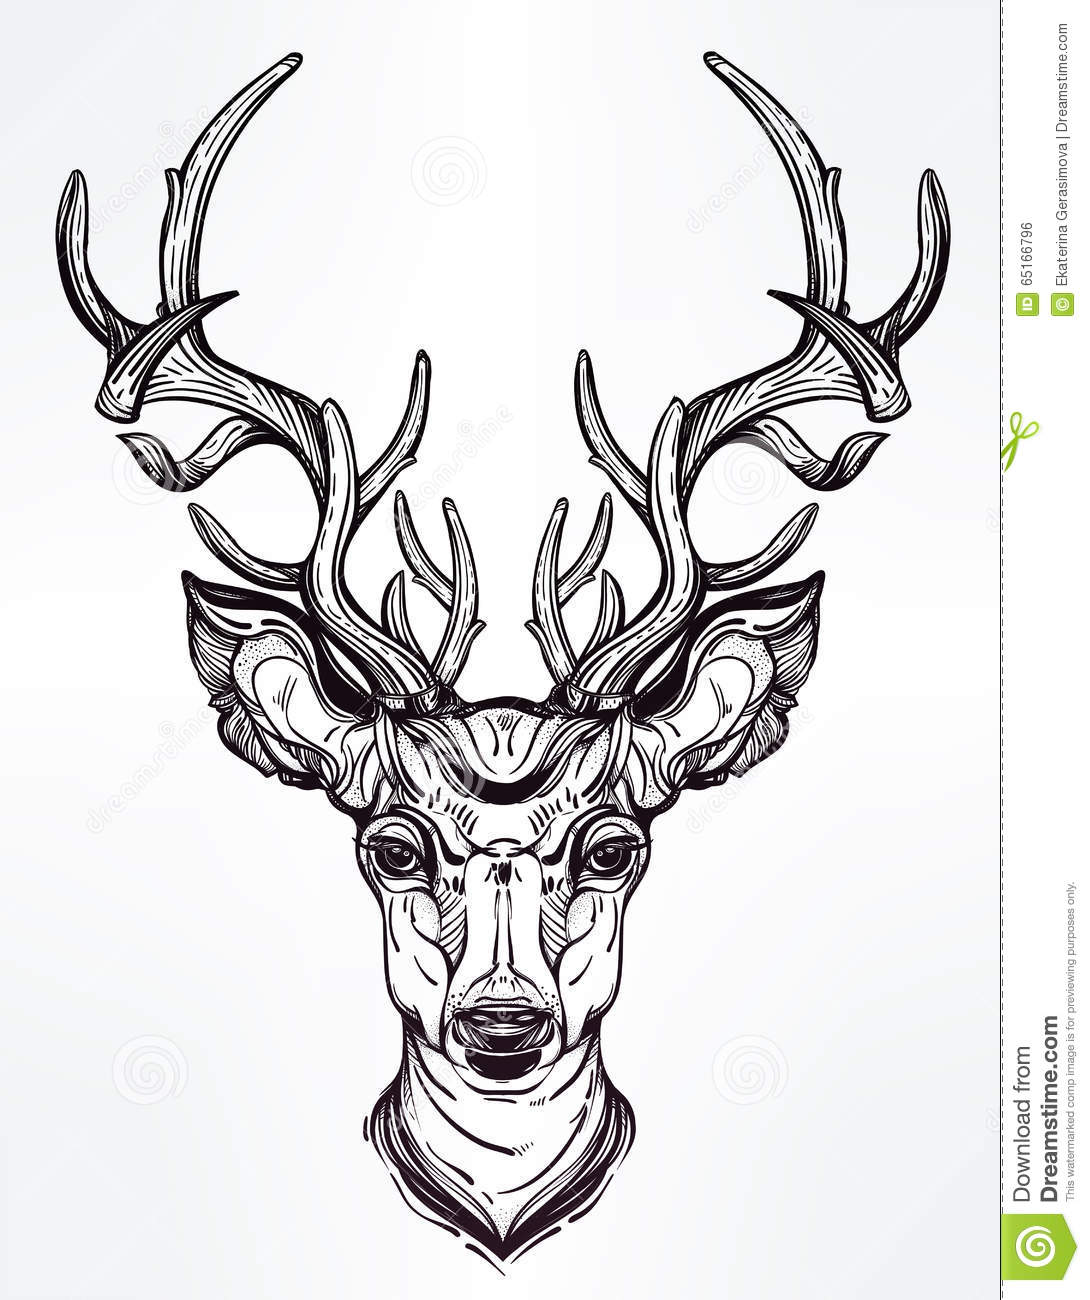 Deer Head In Line Art Style Stock Vector Illustration